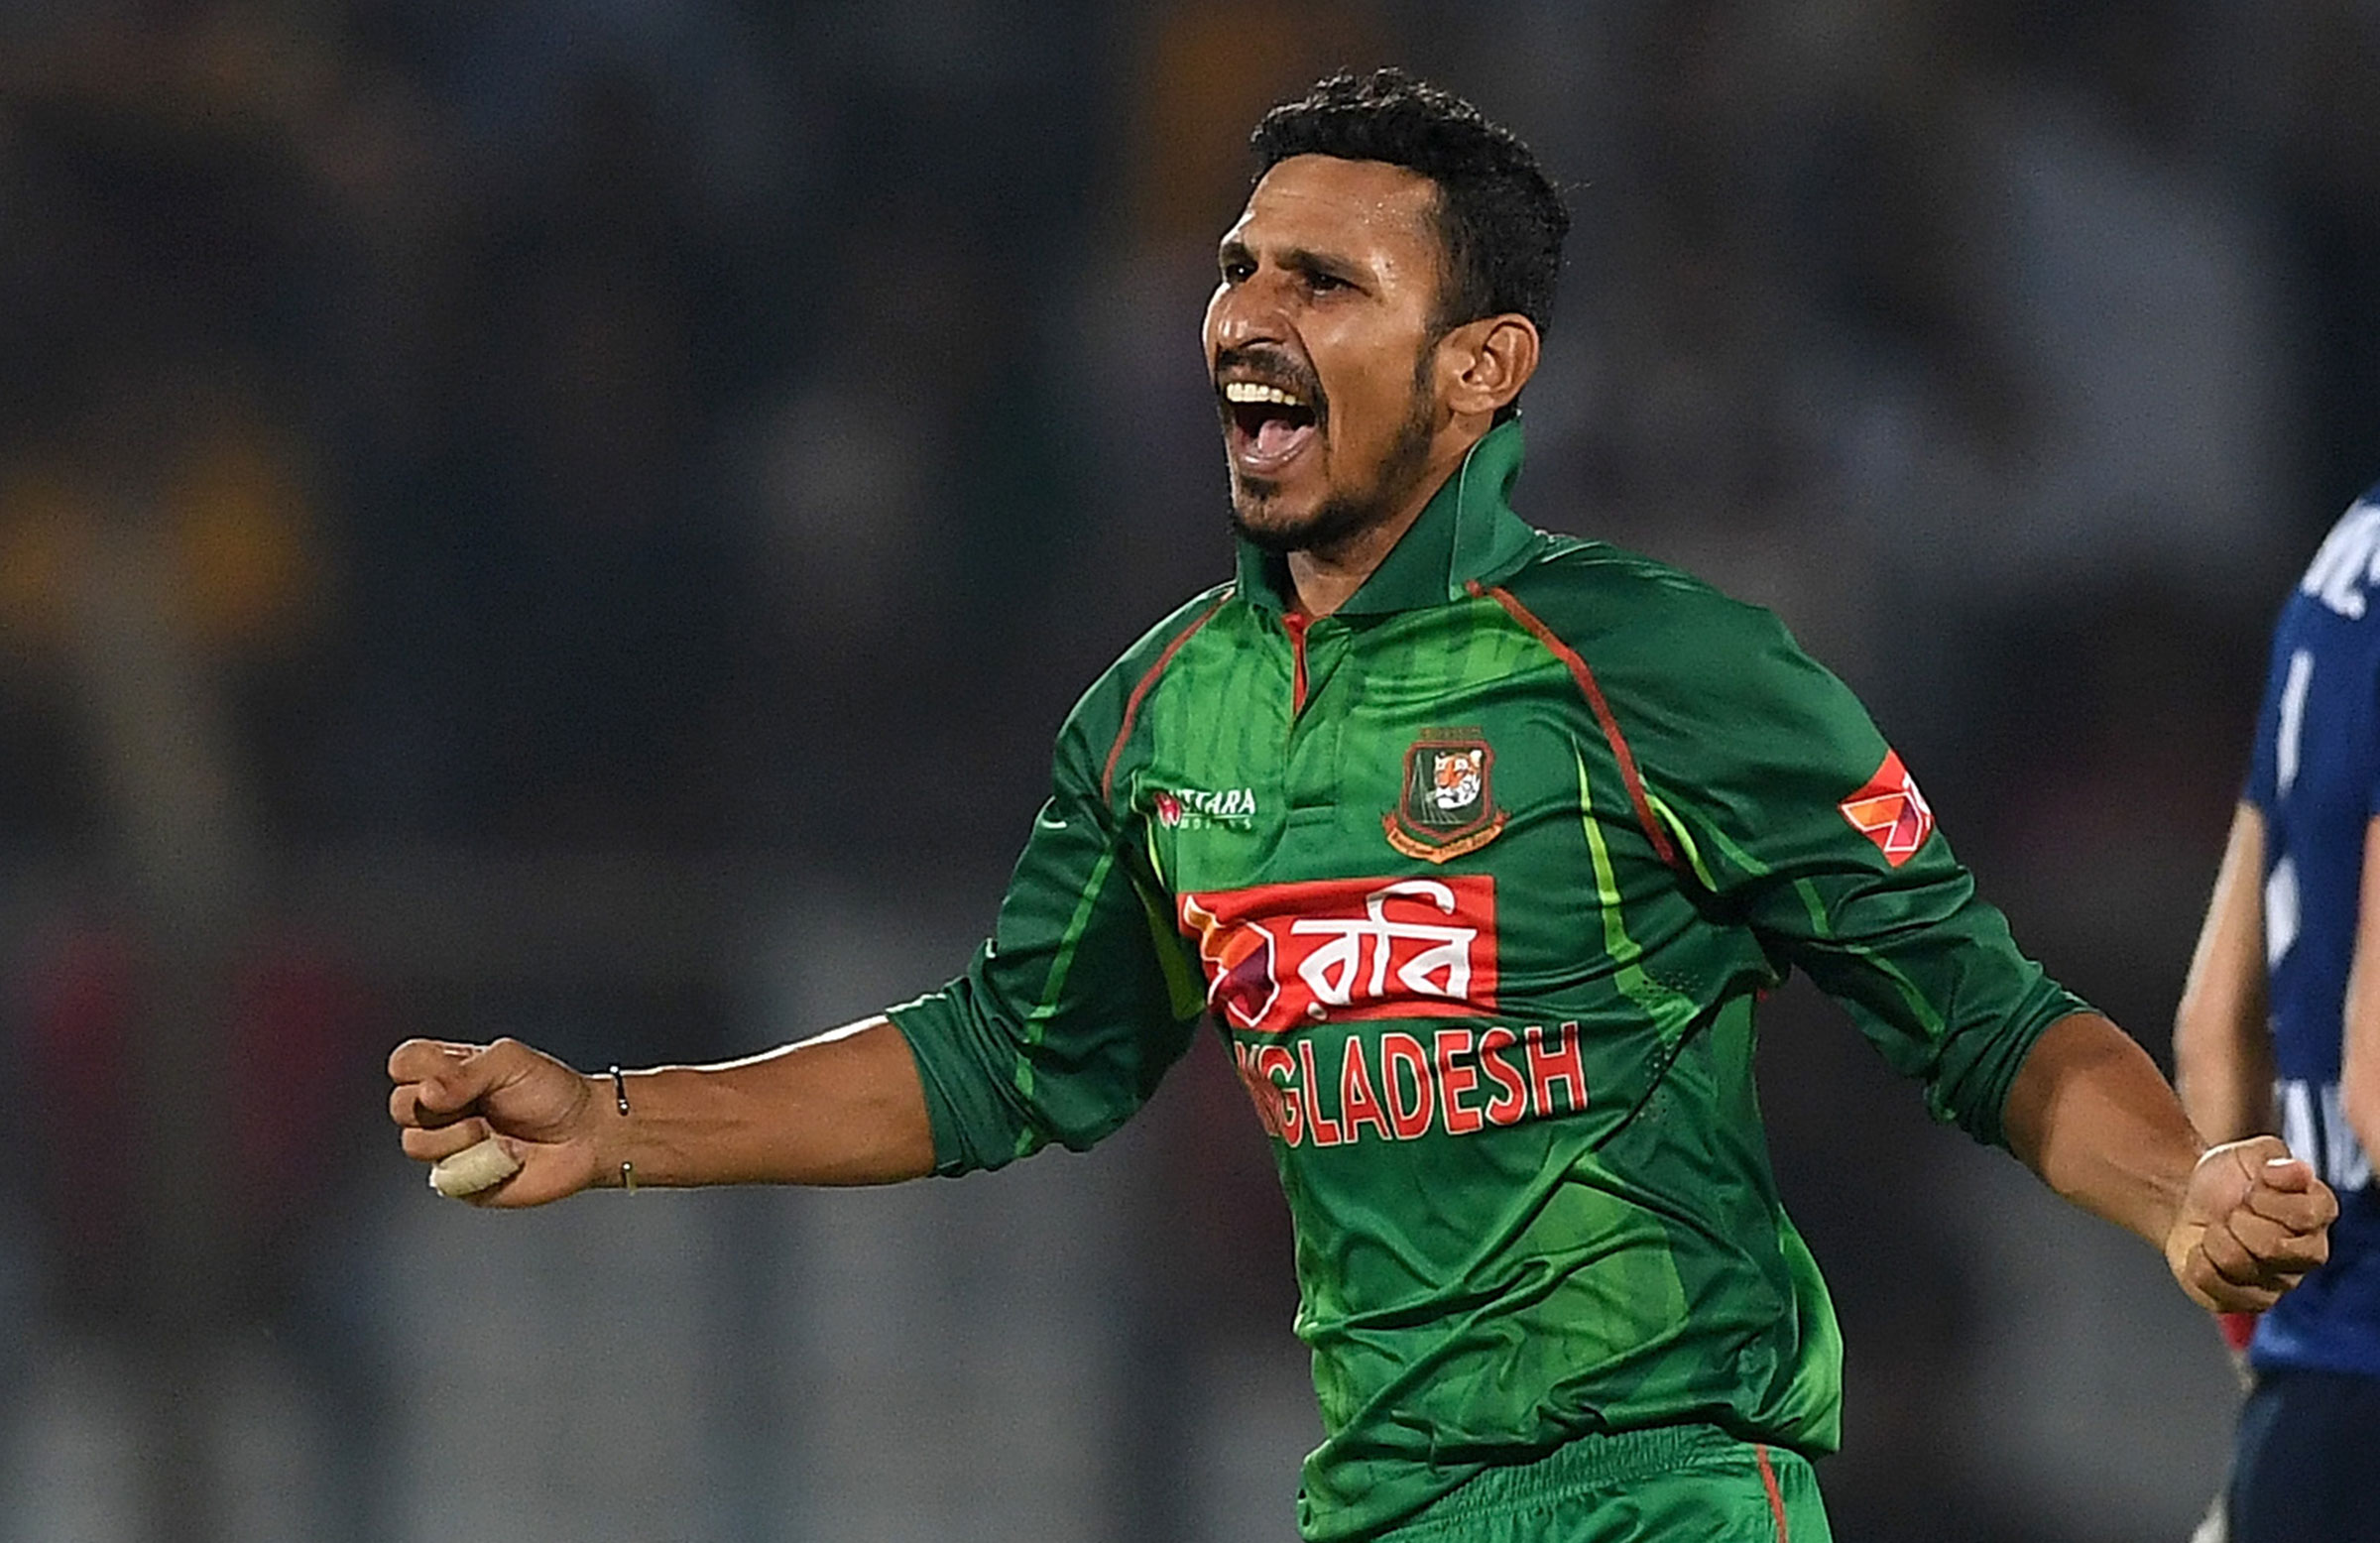 Mahmudullah overlooked as Bangladesh recall Nasir and Shafiul